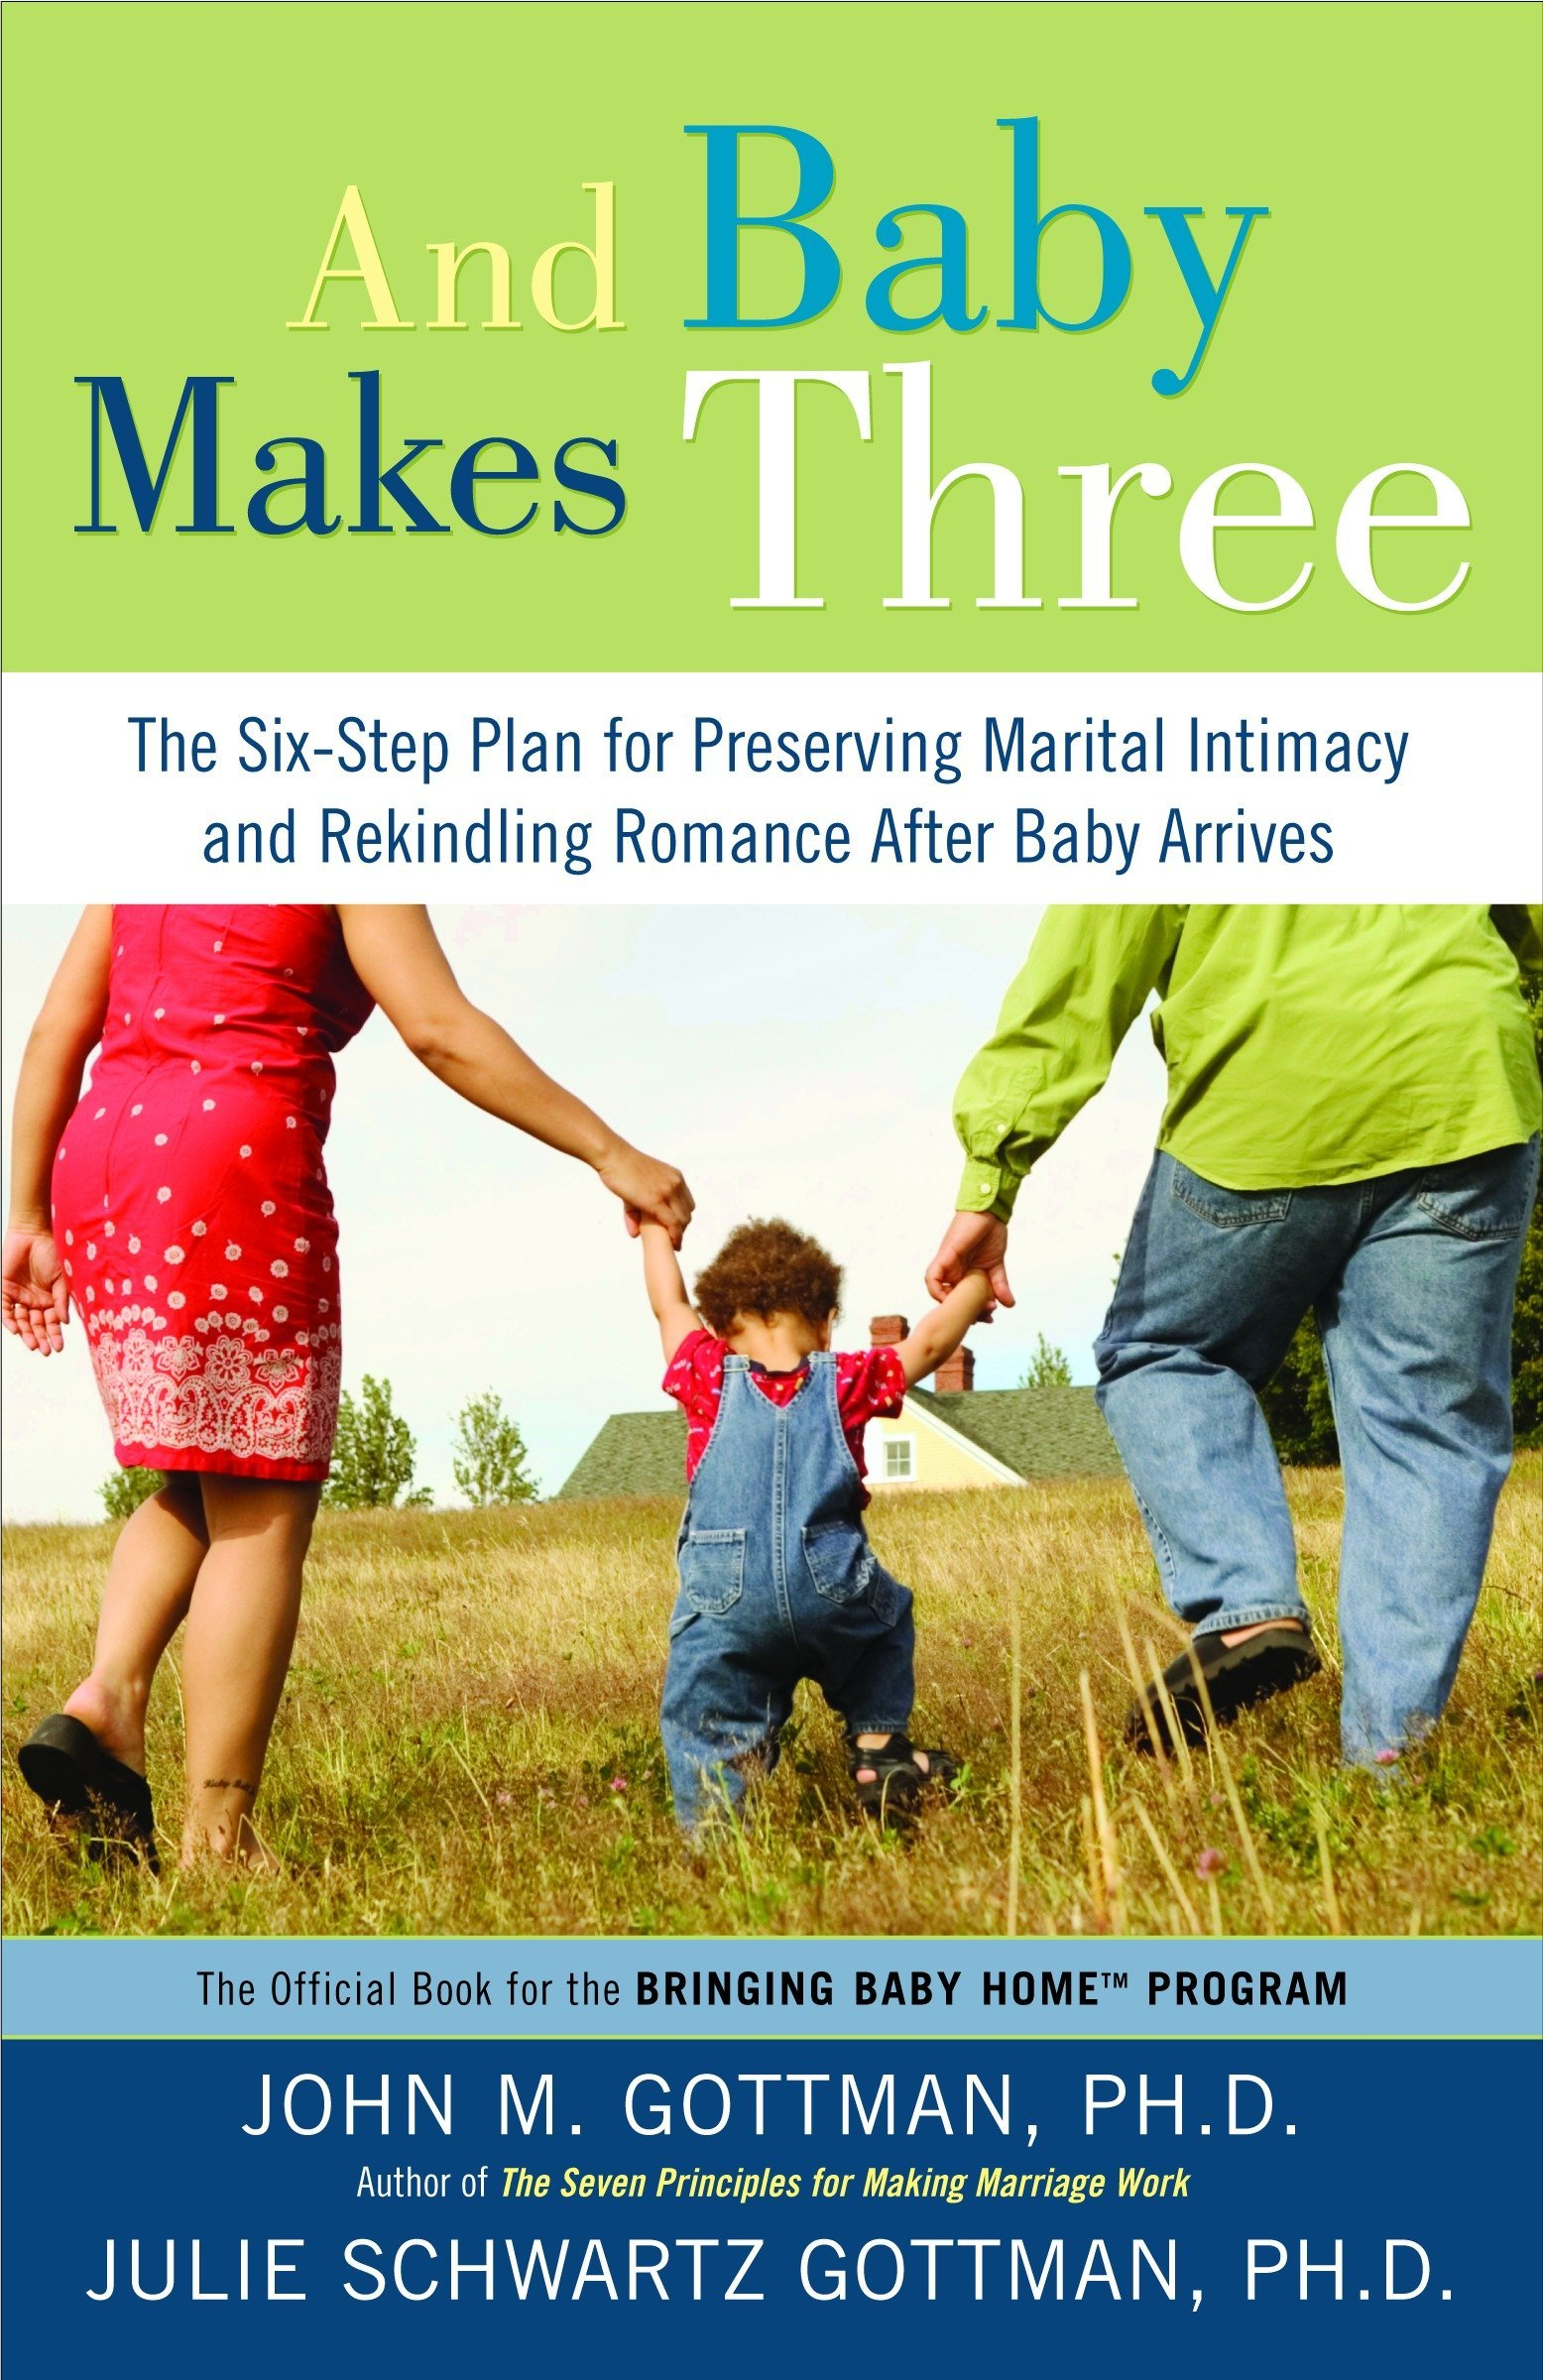 And Baby Makes Three: The Six-Step Plan for Preserving Marital Intimacy and Rekindling Romance After Baby Arrives by Gottman, John Mordechai/ Gottman, Julie Schwartz